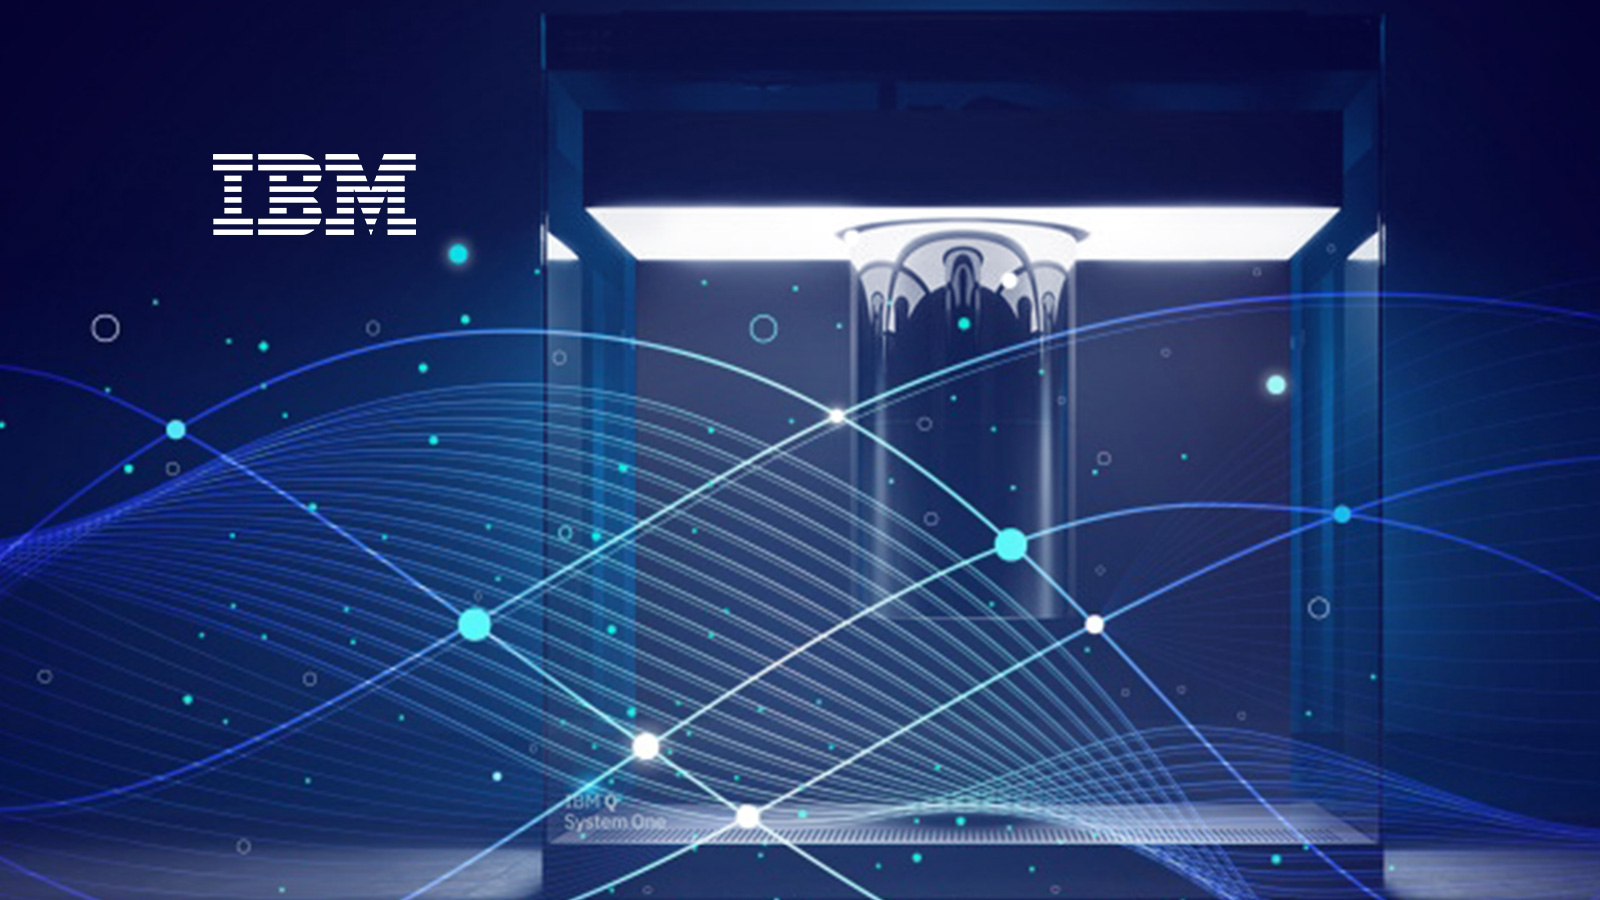 IBM Achieves Highest Quantum Volume to Date, Establishes ... on disney road map, microsoft road map, comptia road map, lego road map, service and product road map, magellan road map, gulf oil road map,